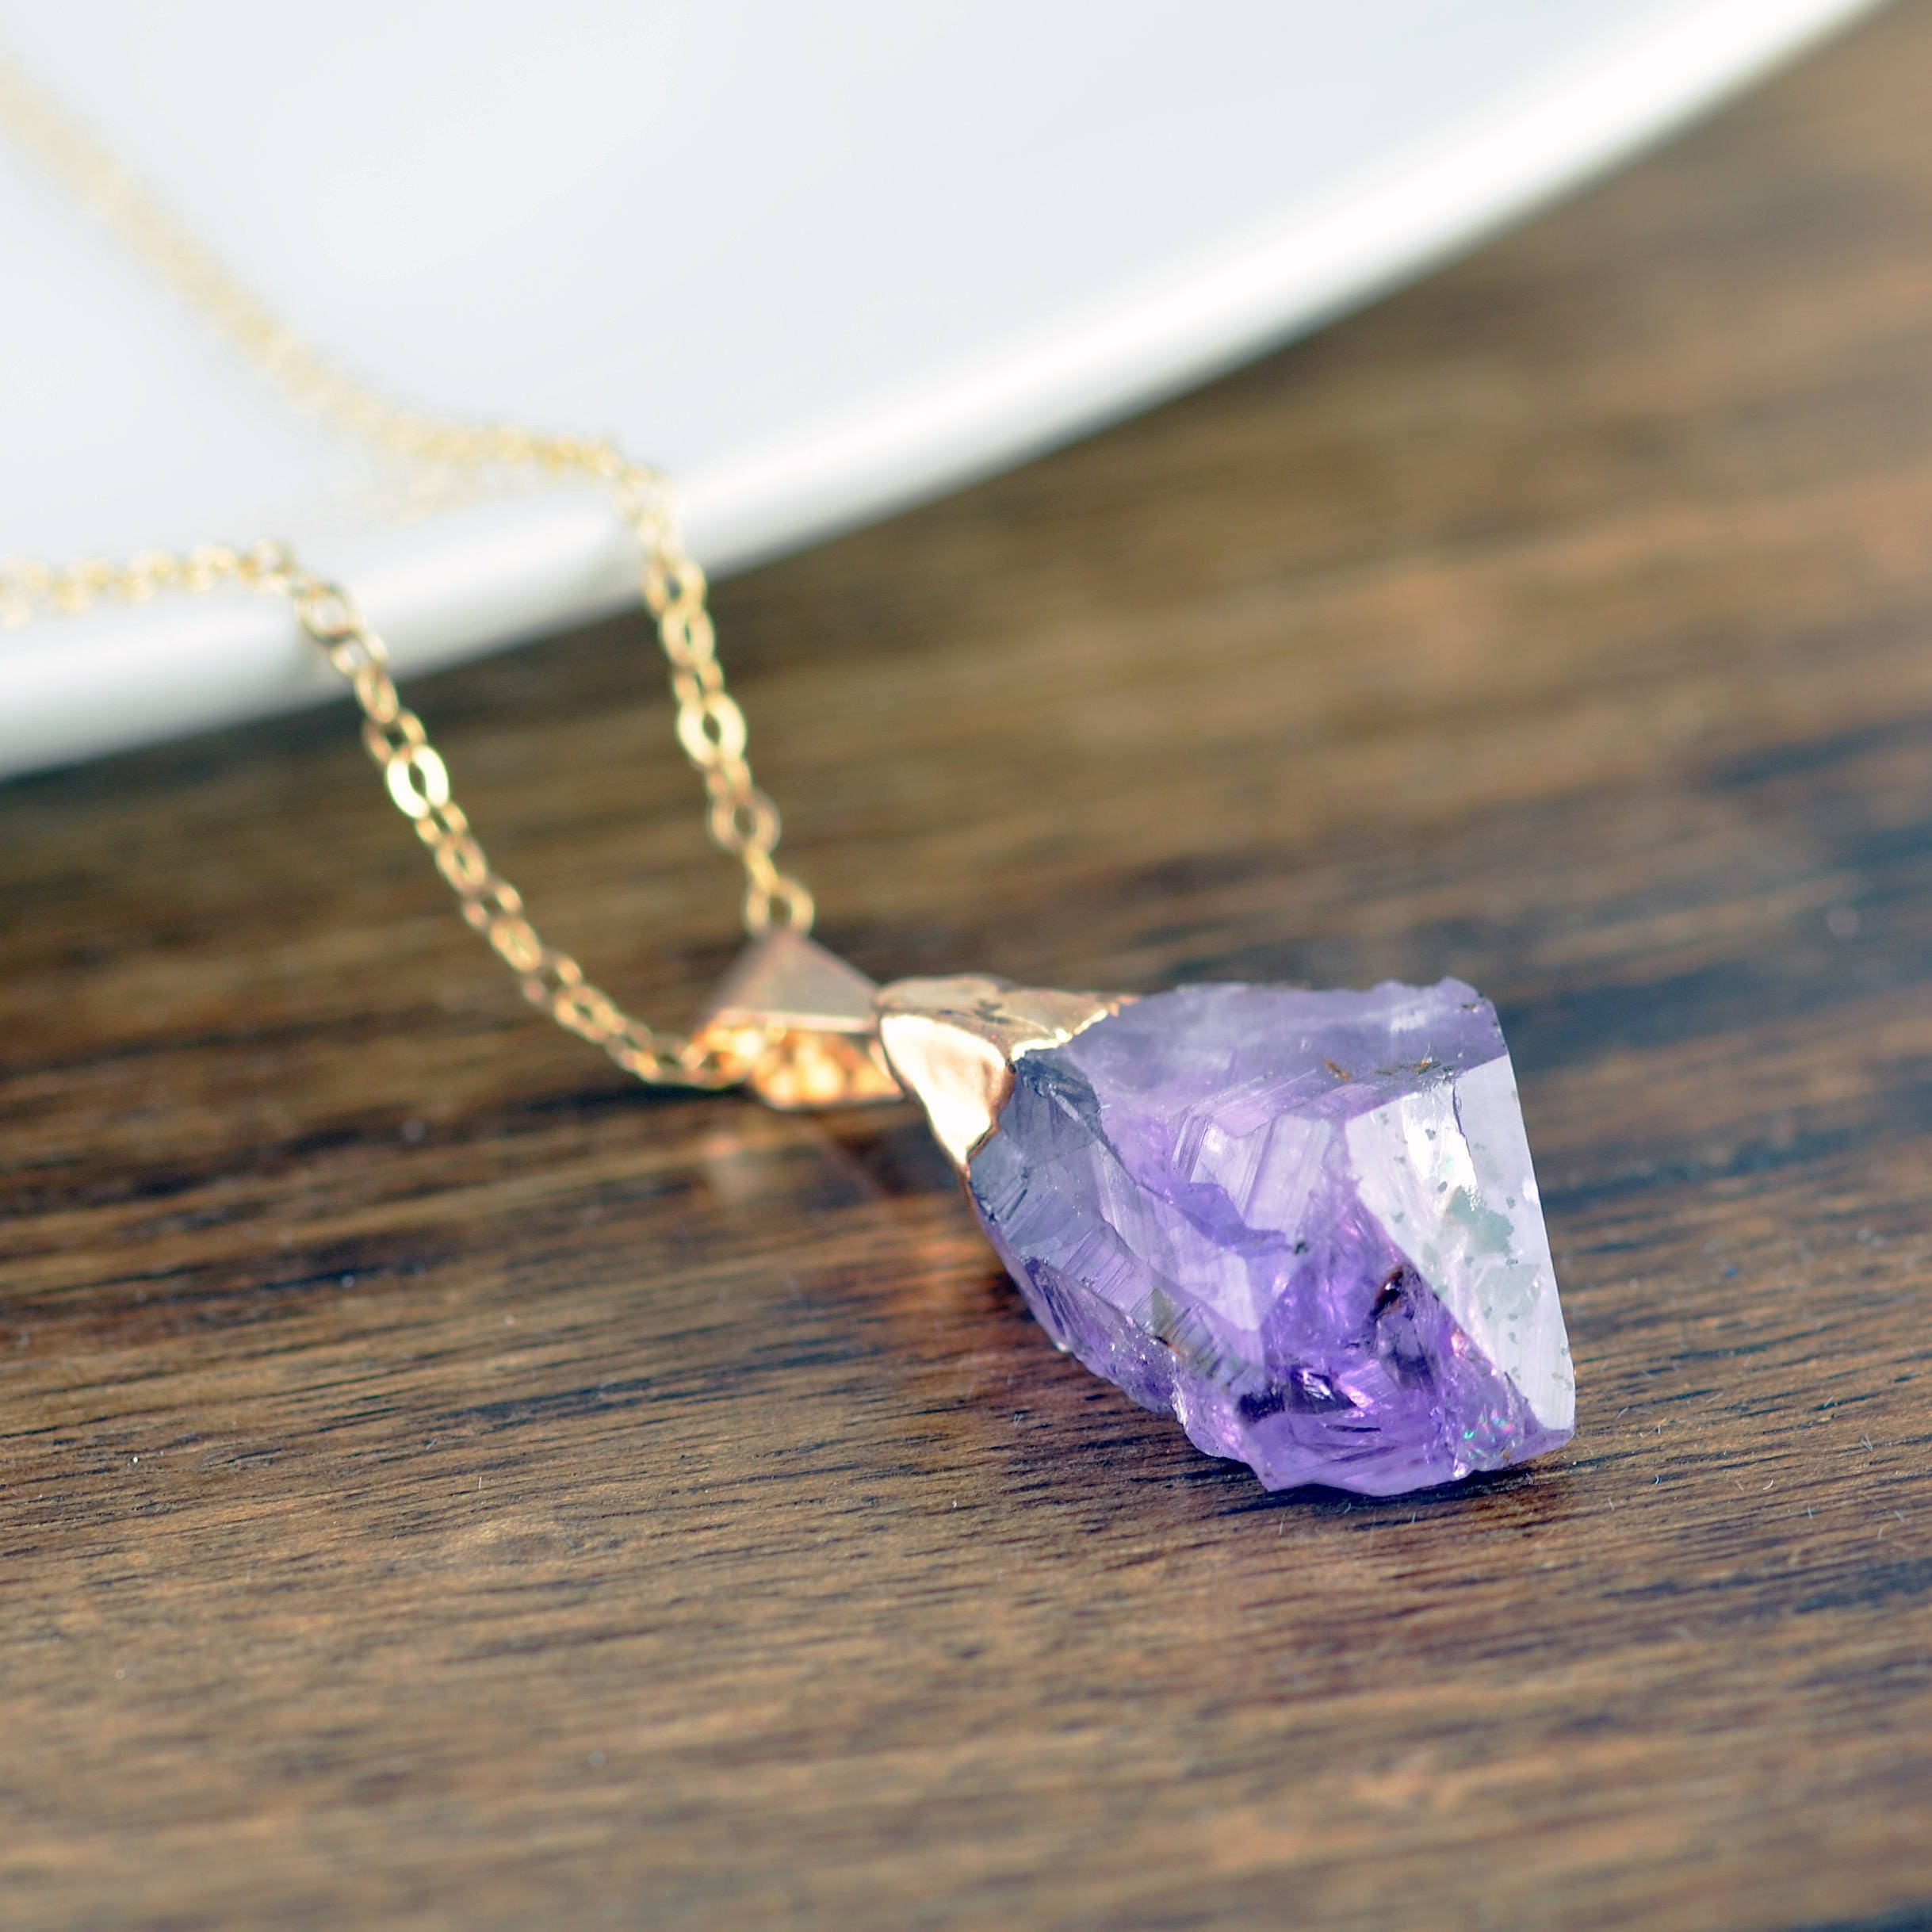 Amethyst crystal necklace amethyst necklace healing crystal amethyst crystal necklace amethyst necklace healing crystal necklace amethyst jewelry raw amethyst amethyst point pendant aloadofball Choice Image